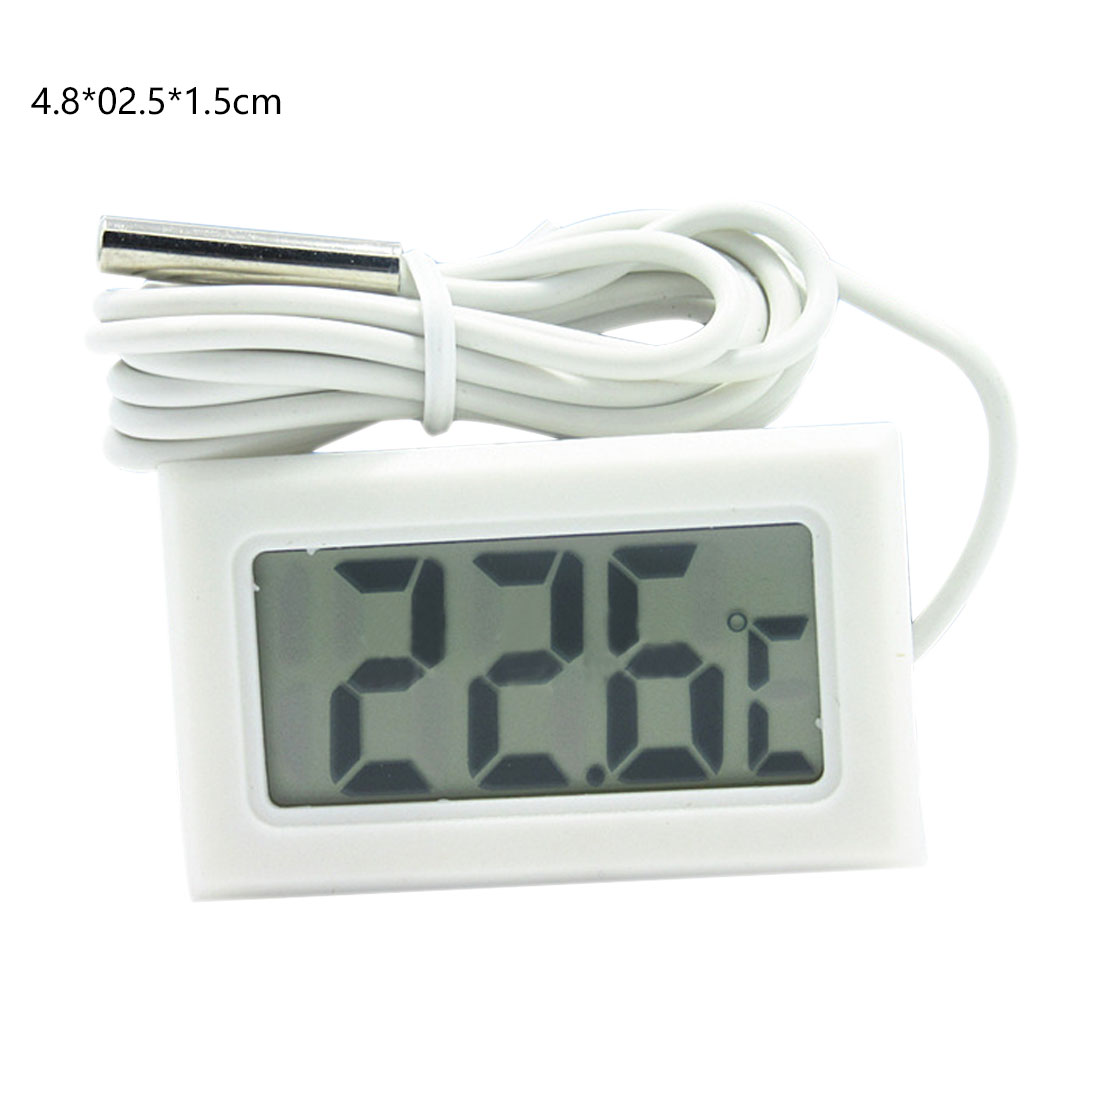 Mini LCD Digital Thermometer Temperature Indoor Temperature Sensor Humidity Meter Gauge Instruments 1 M Cable gold earrings for women